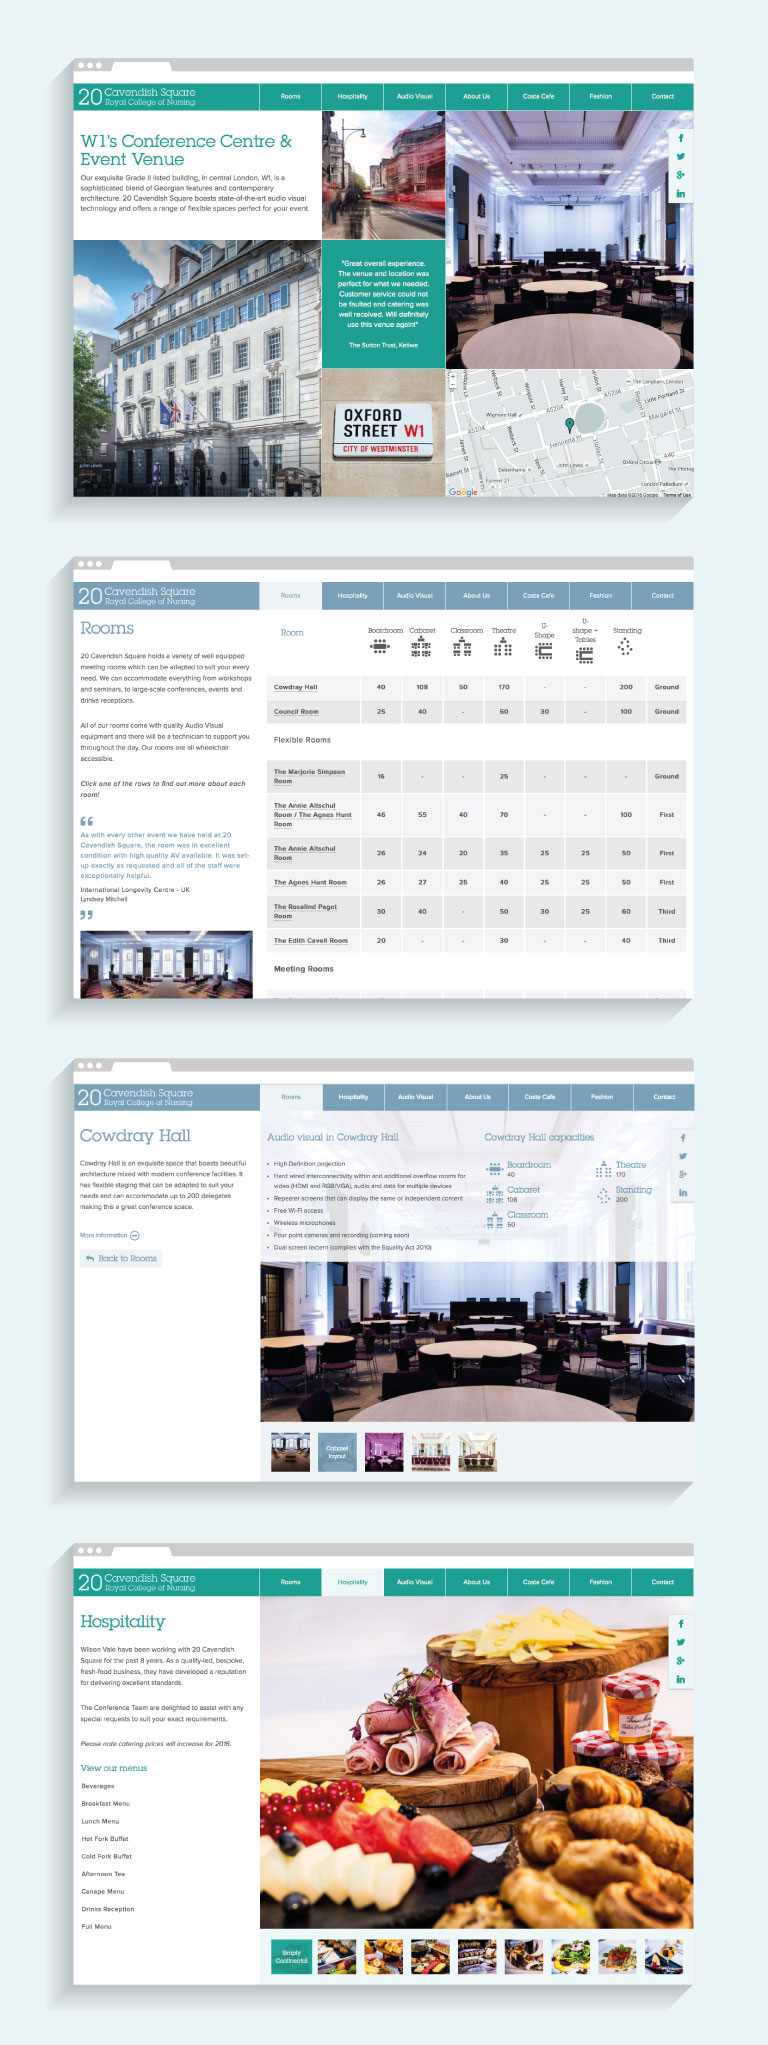 Website pages from the 20 Cavendish Square website - mobile